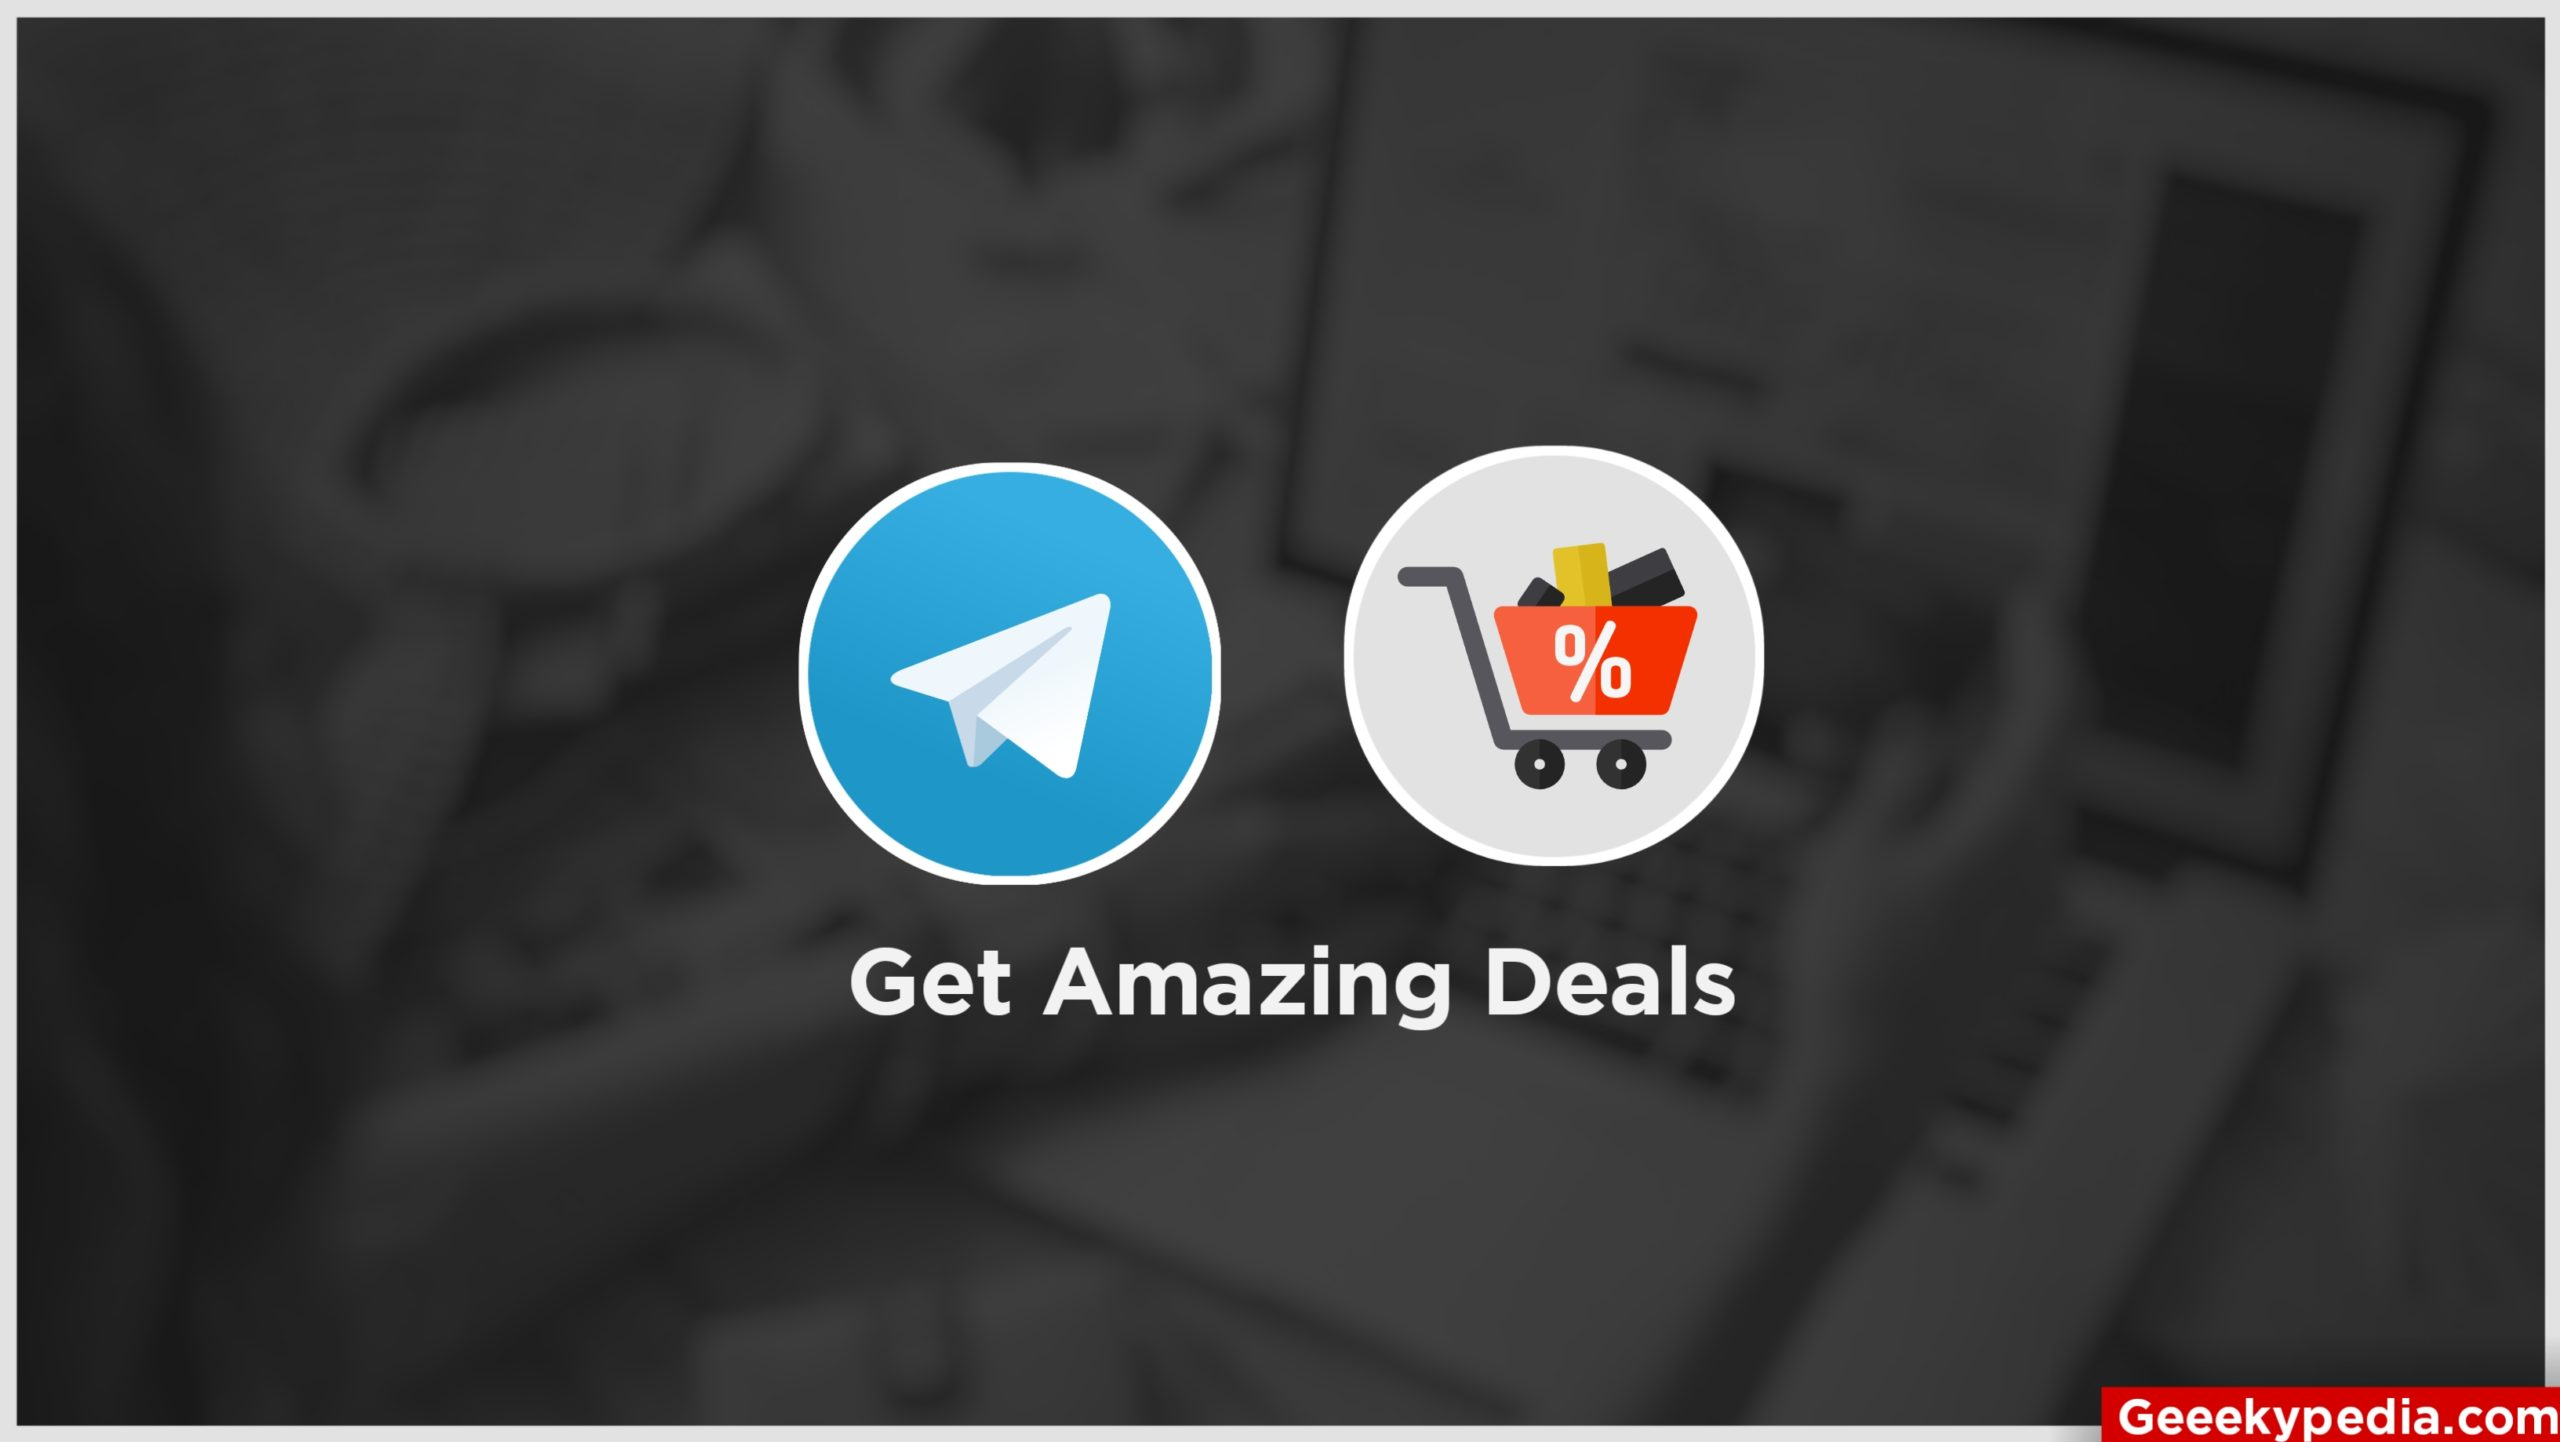 Best Online Shopping Telegram Channel - Deals, Loots, Offers, Recharge Tricks